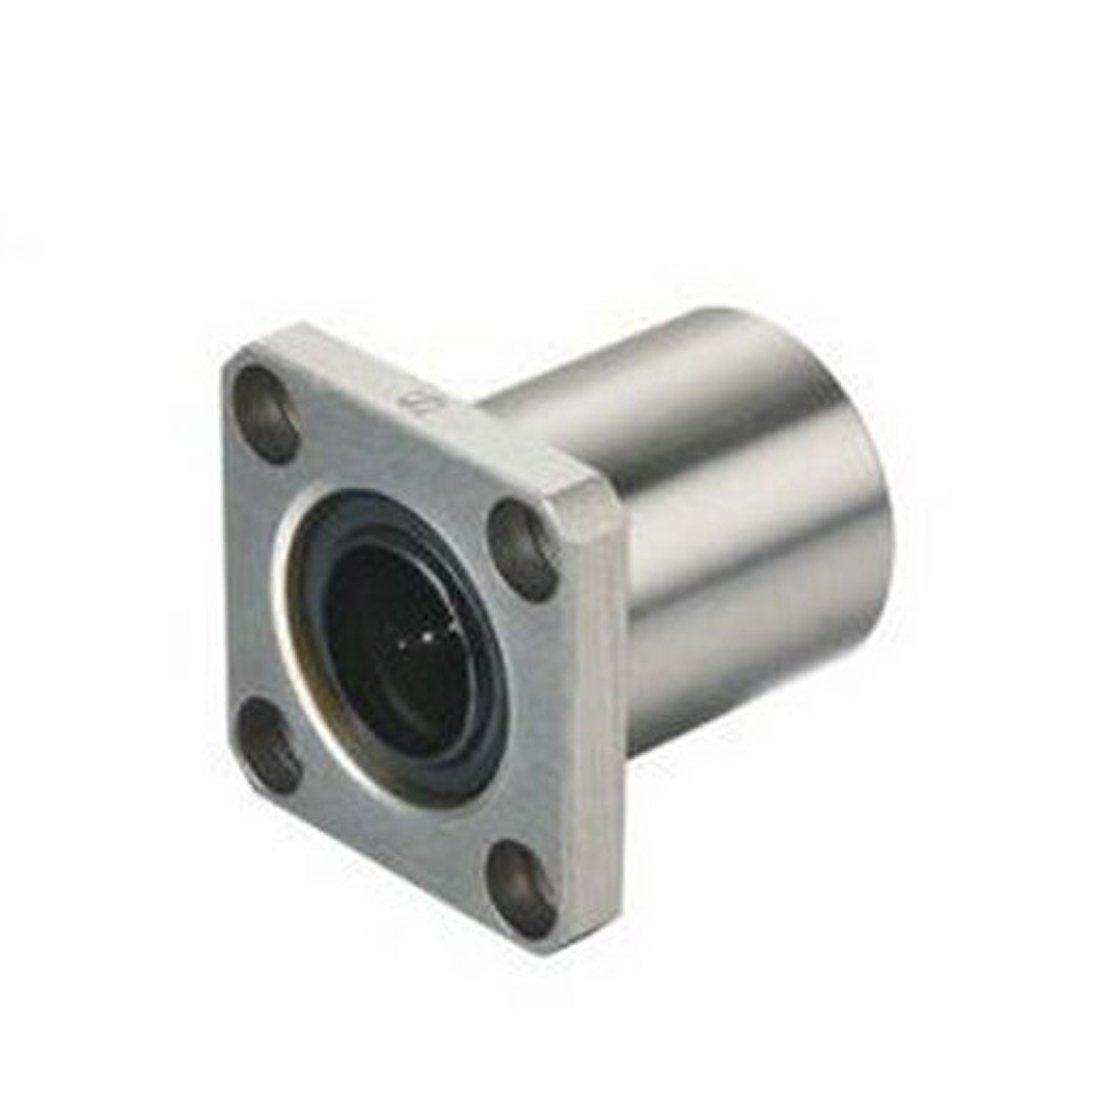 2pcs LMK12UU flange linear bushing linear bearing CNC part